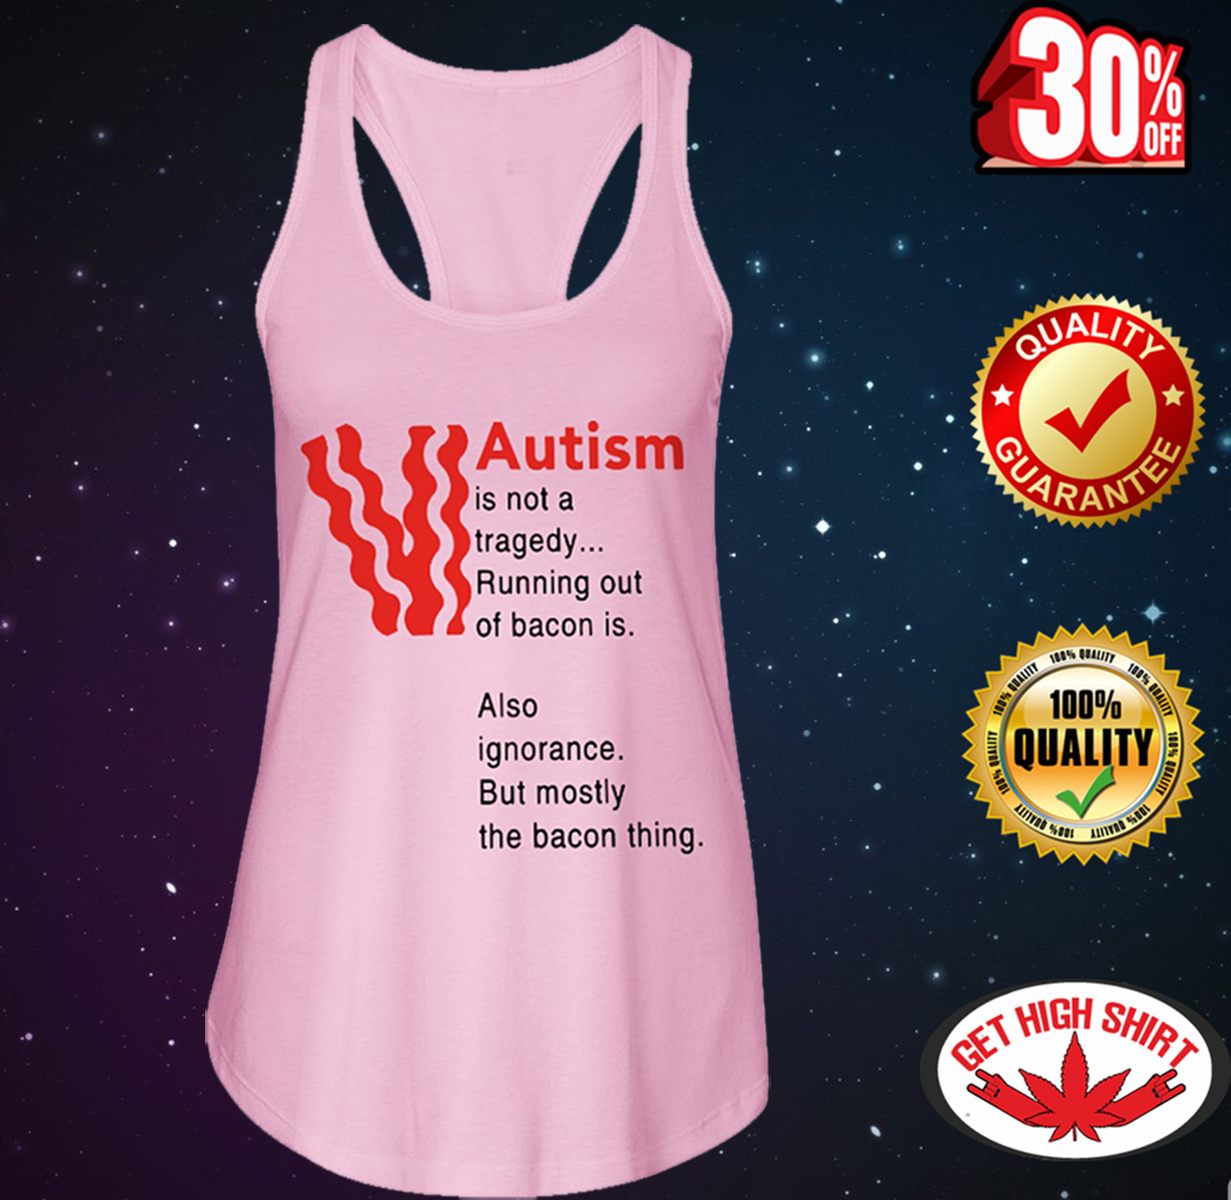 Autism is not a tragedy running out of bacon is also ignorance but mostly the bacon thing flowy tank